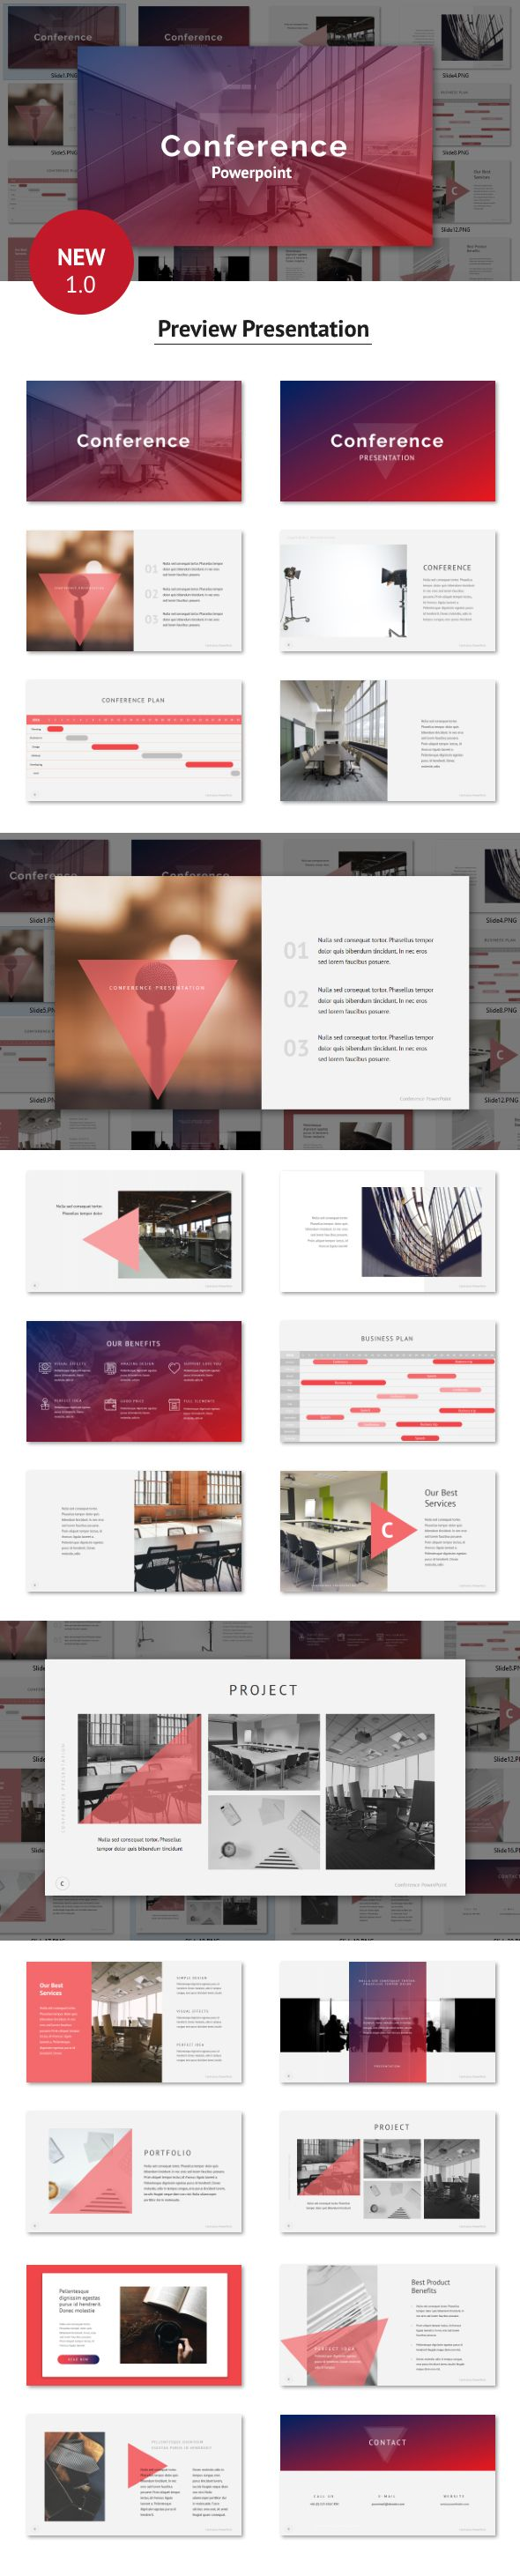 conference powerpoint template powerpoint templates presentation